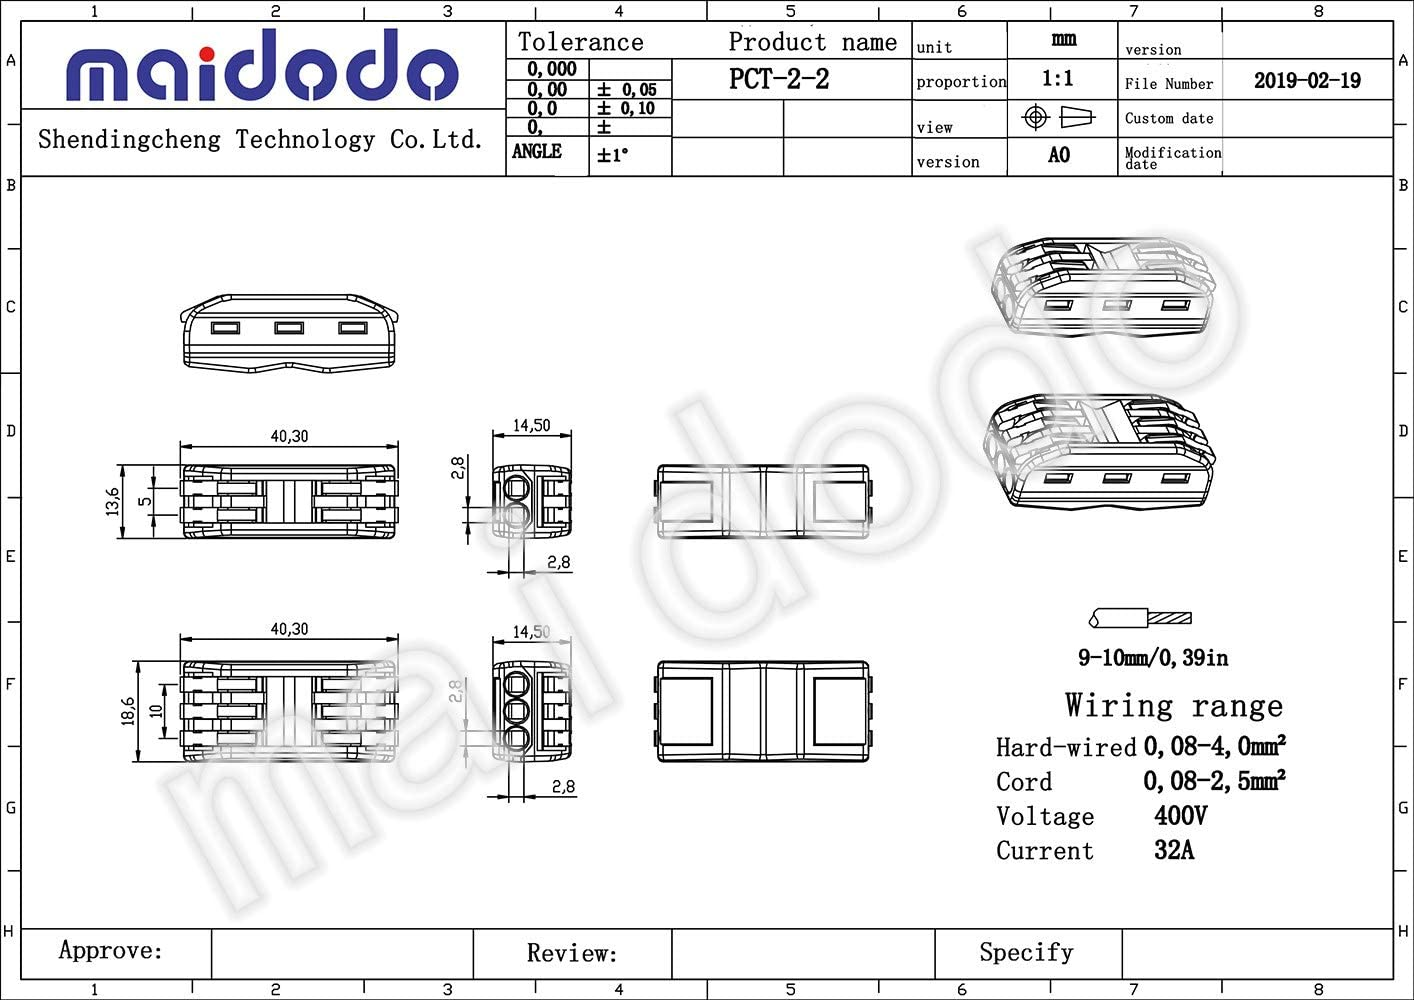 Colored Compact Wire Connectors,Universal Terminal Block Push-in Universal 3 in 3 Out with 10 Connector Holder Maidodo 10PCS 222-413B Terminal Block Connectors